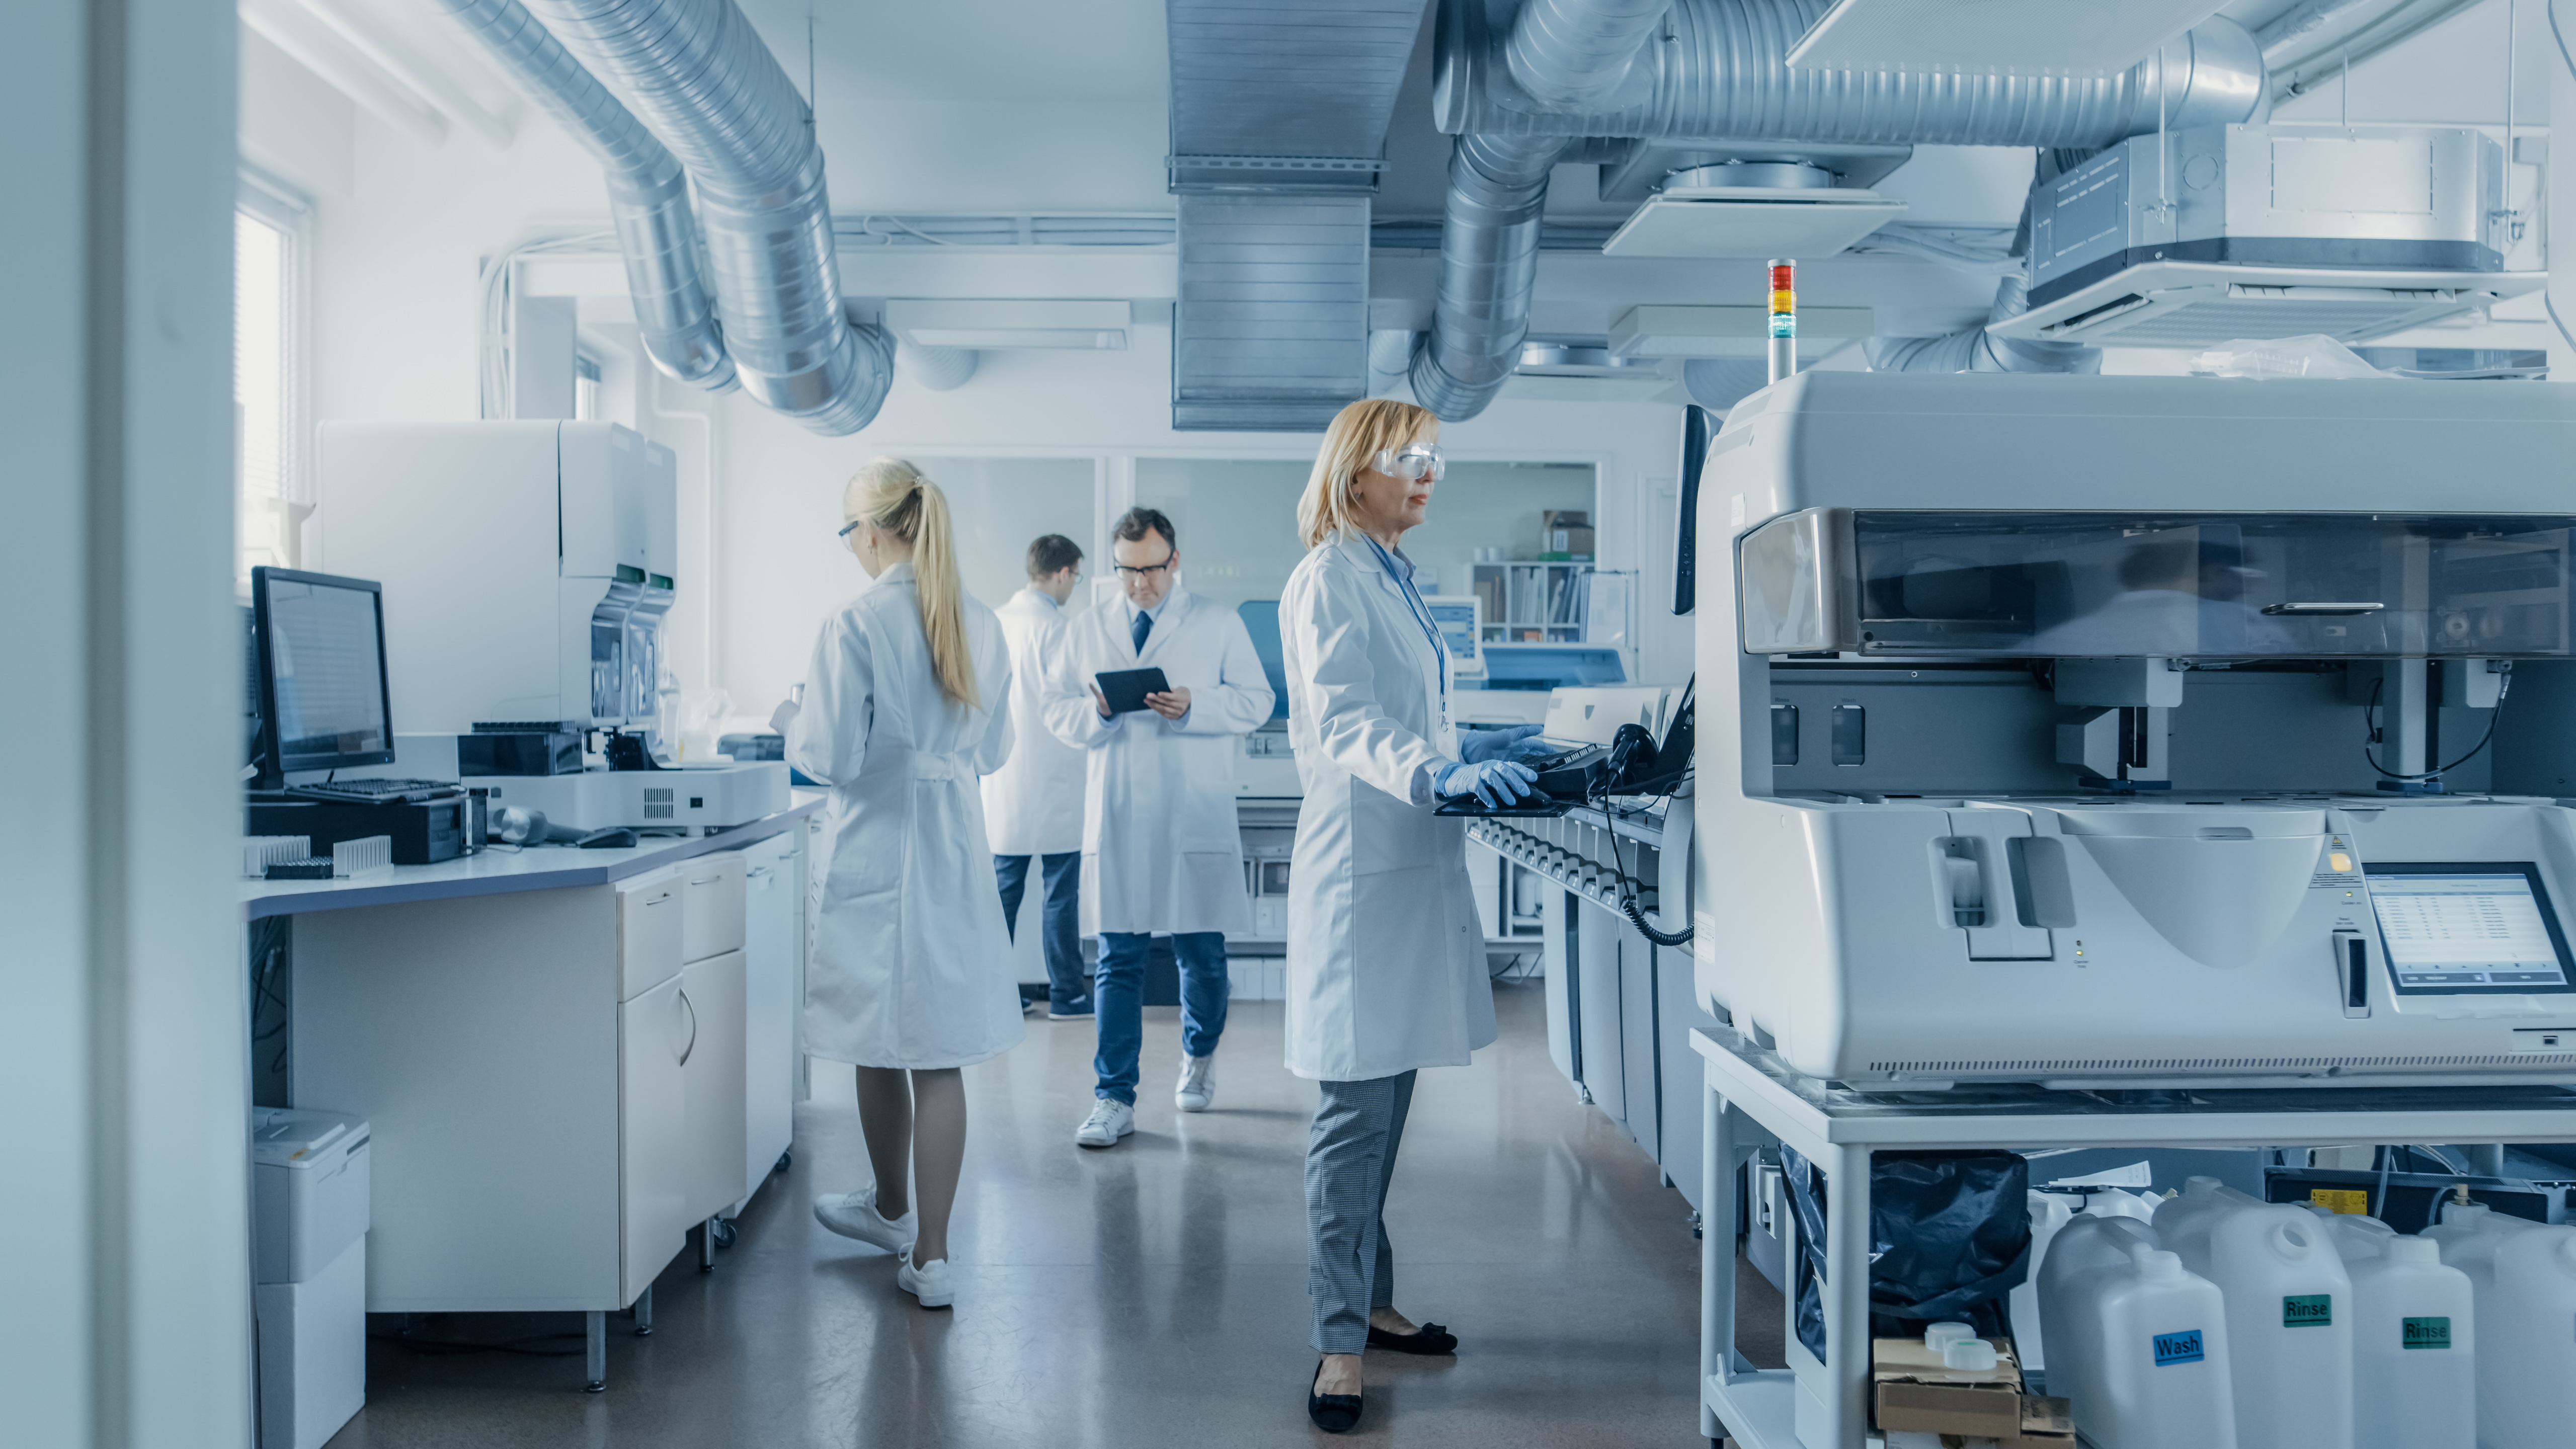 Internal Air Quality in a Laboratory